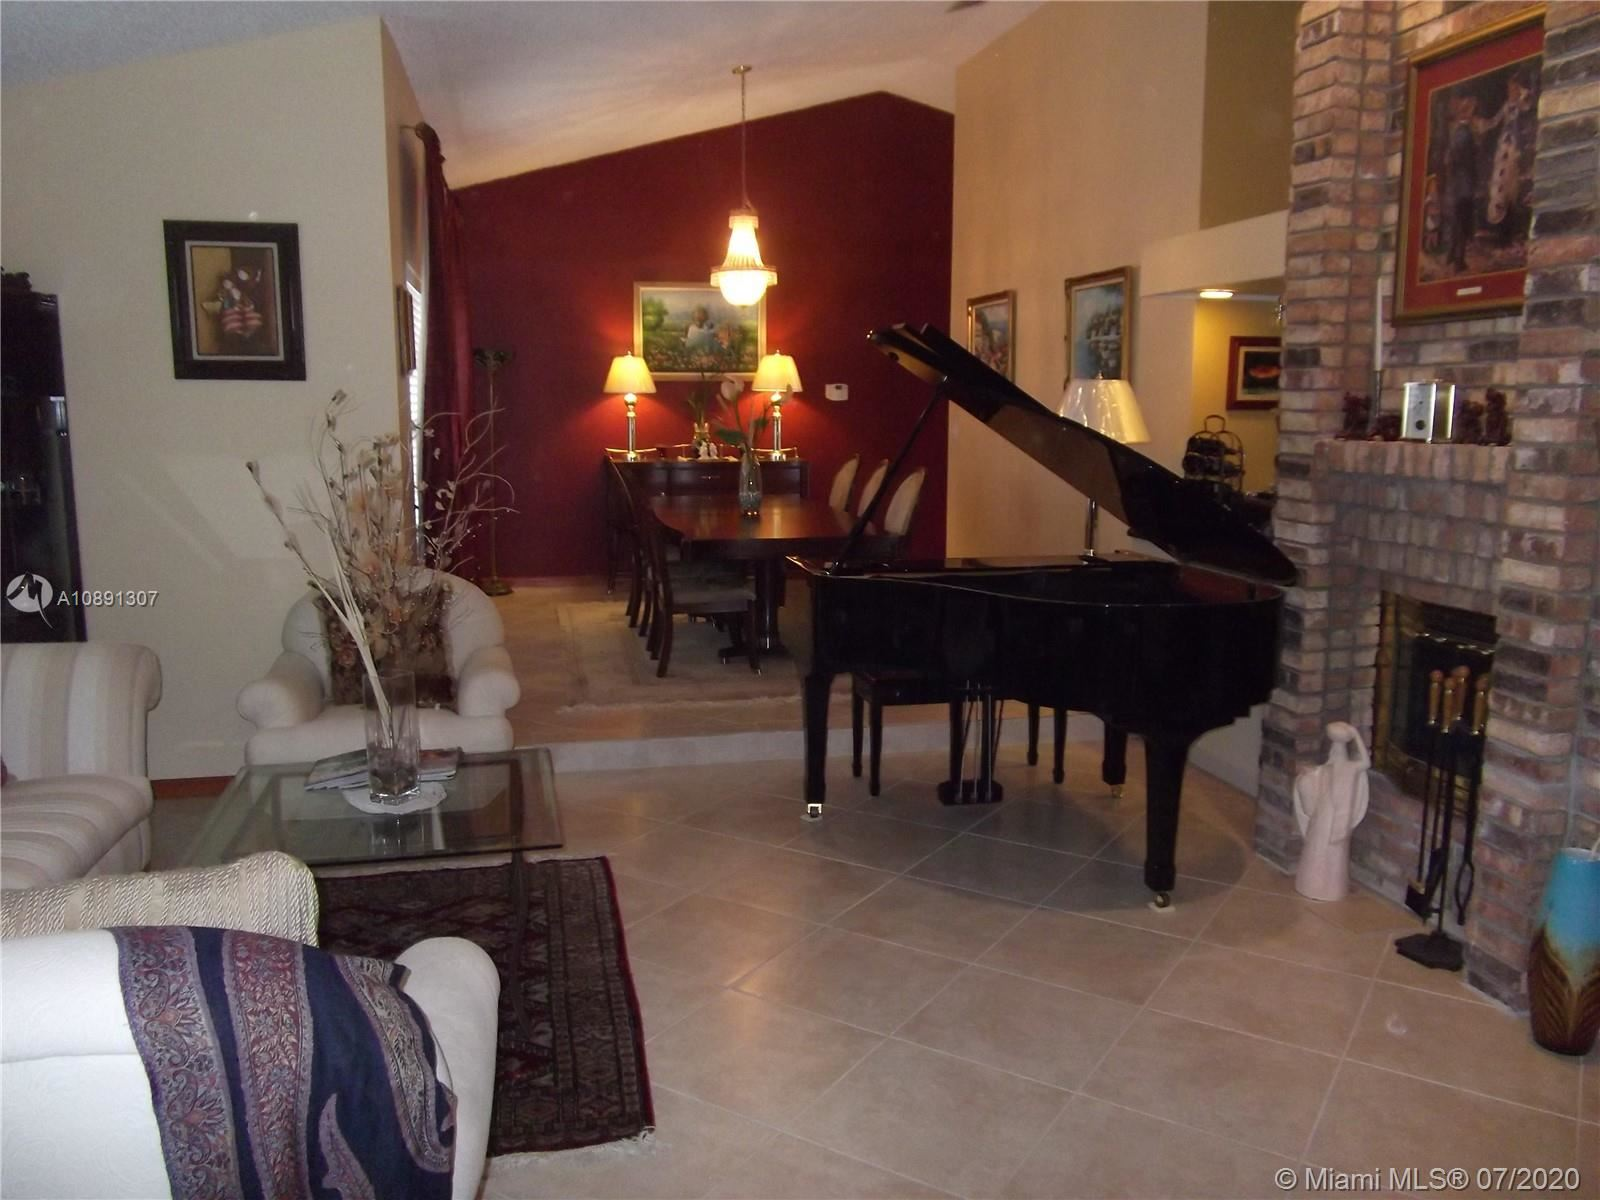 11171 NW 10th Pl, Coral Springs, FL 33071 - #: A10891307